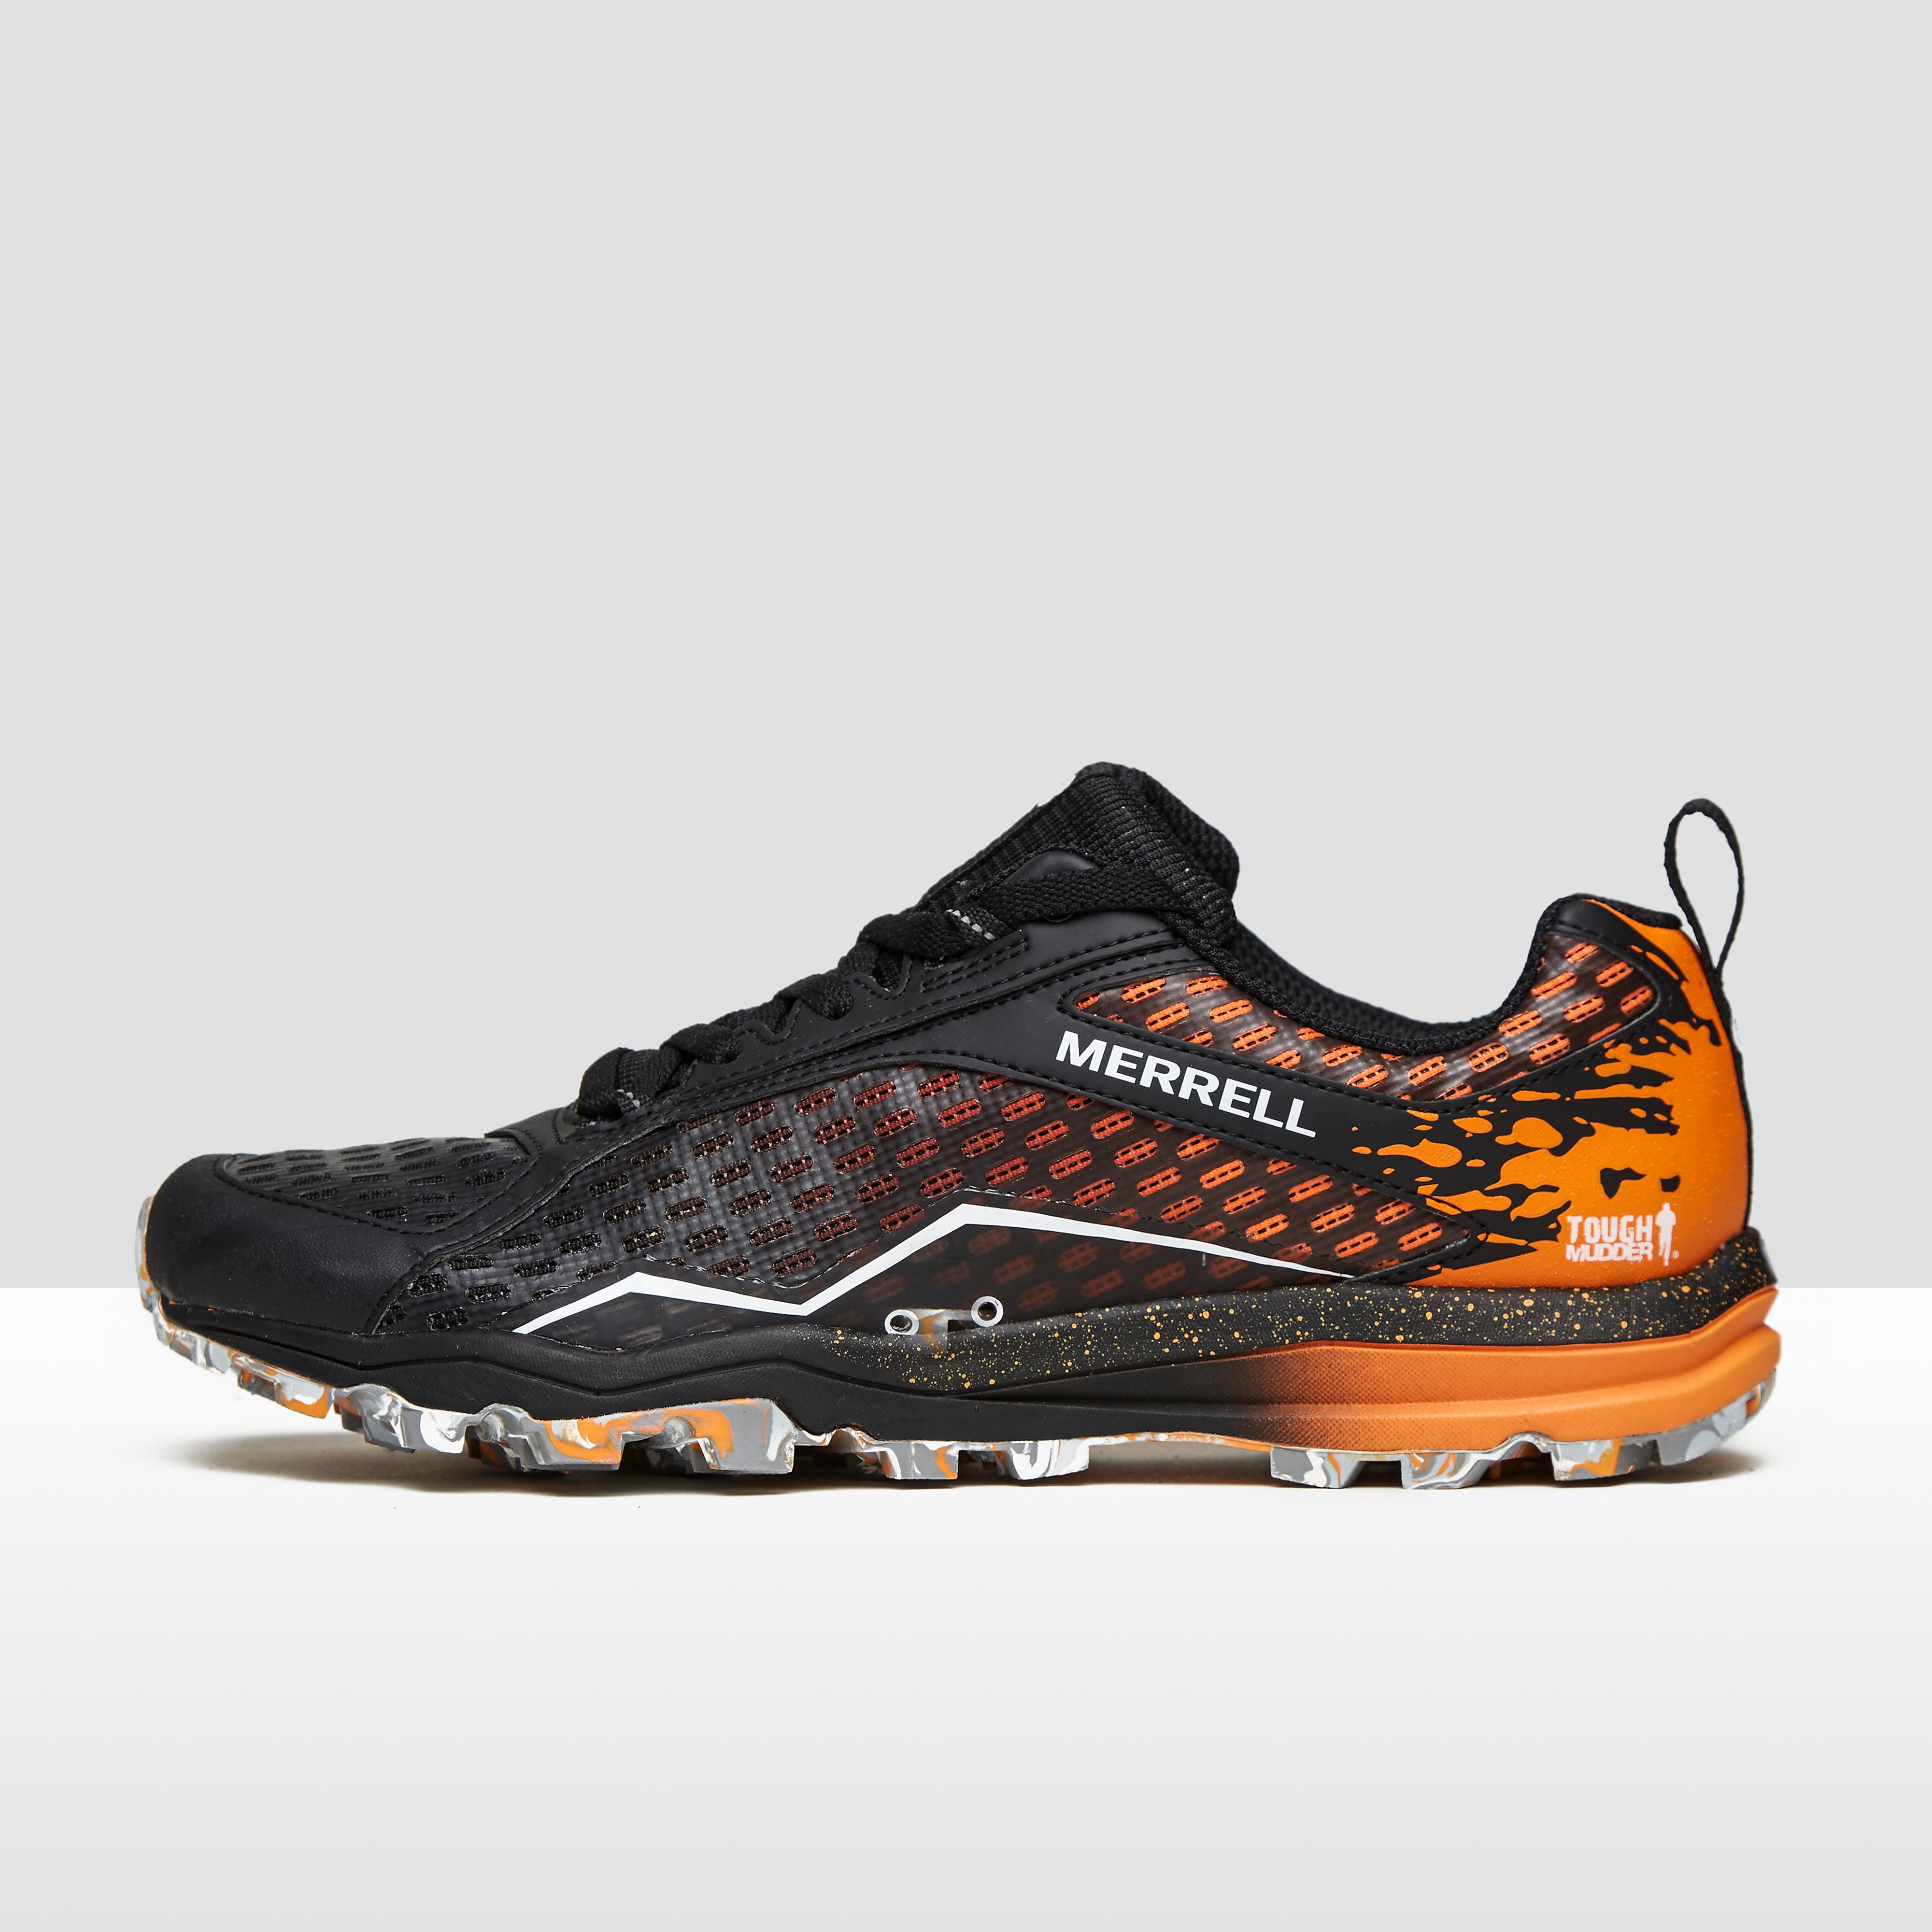 MERRELL ALL OUT CRUSH TOUGH MUD